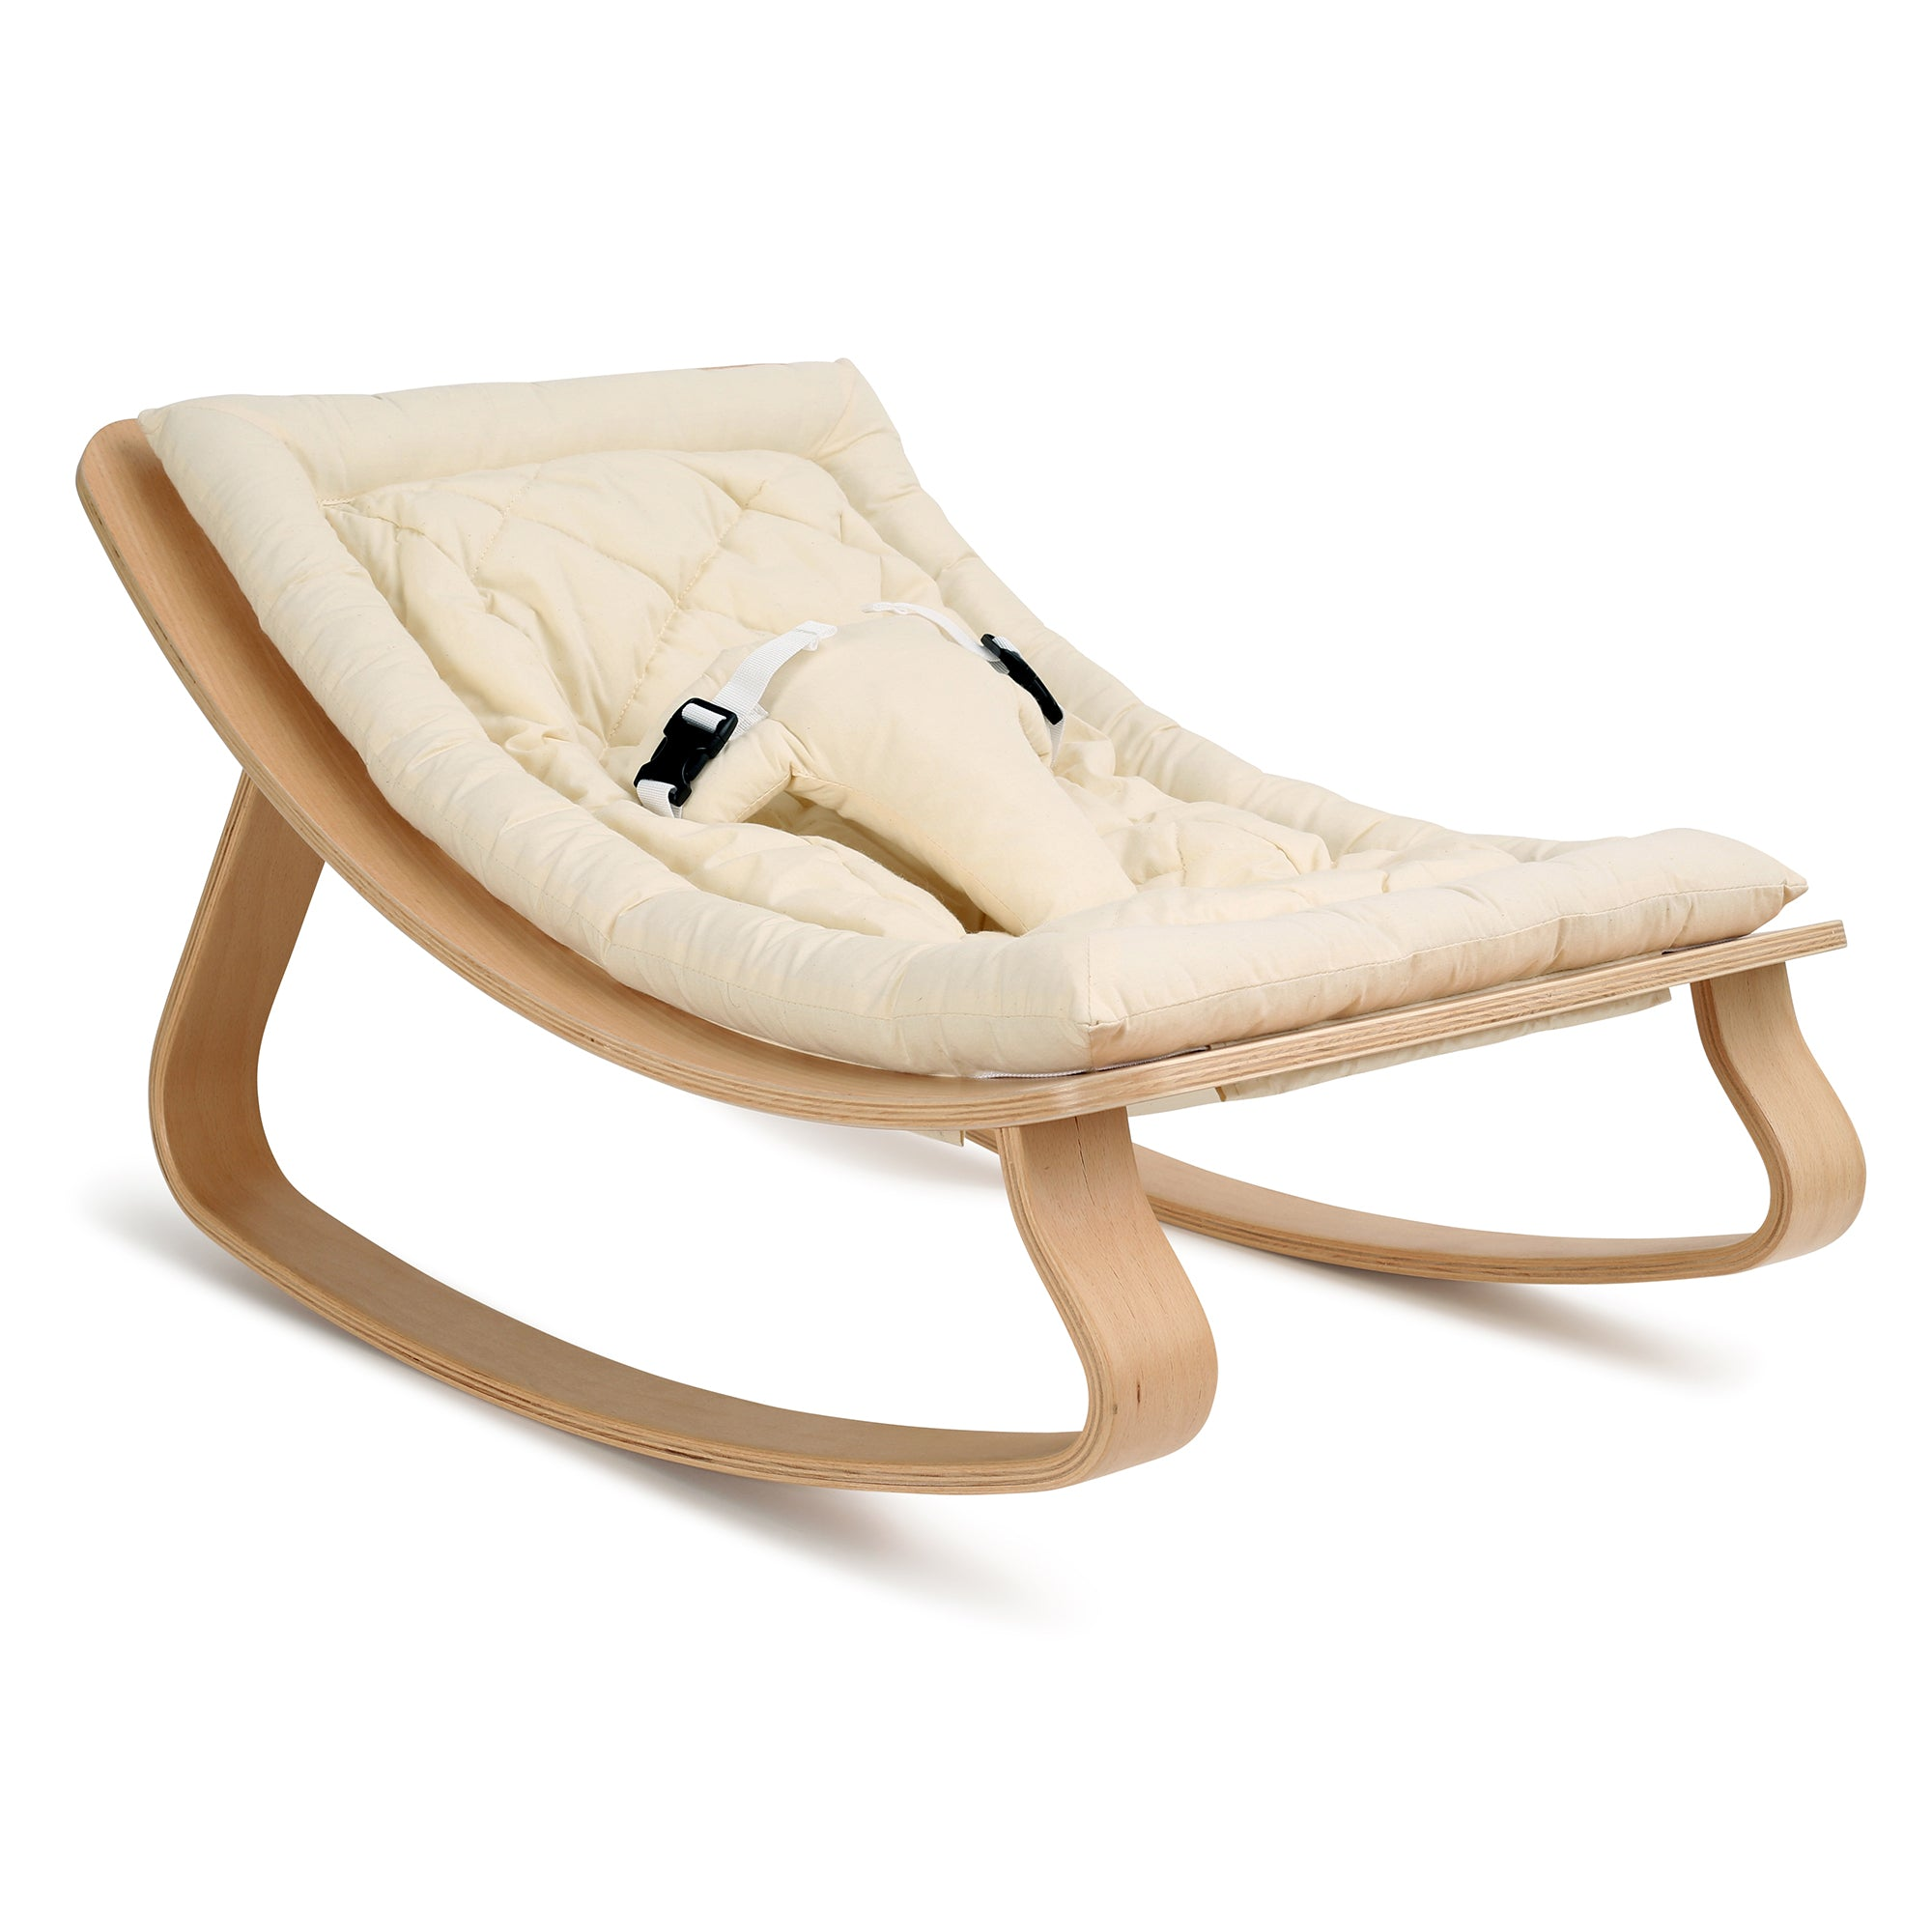 LEVO Baby Bouncer - Organic White